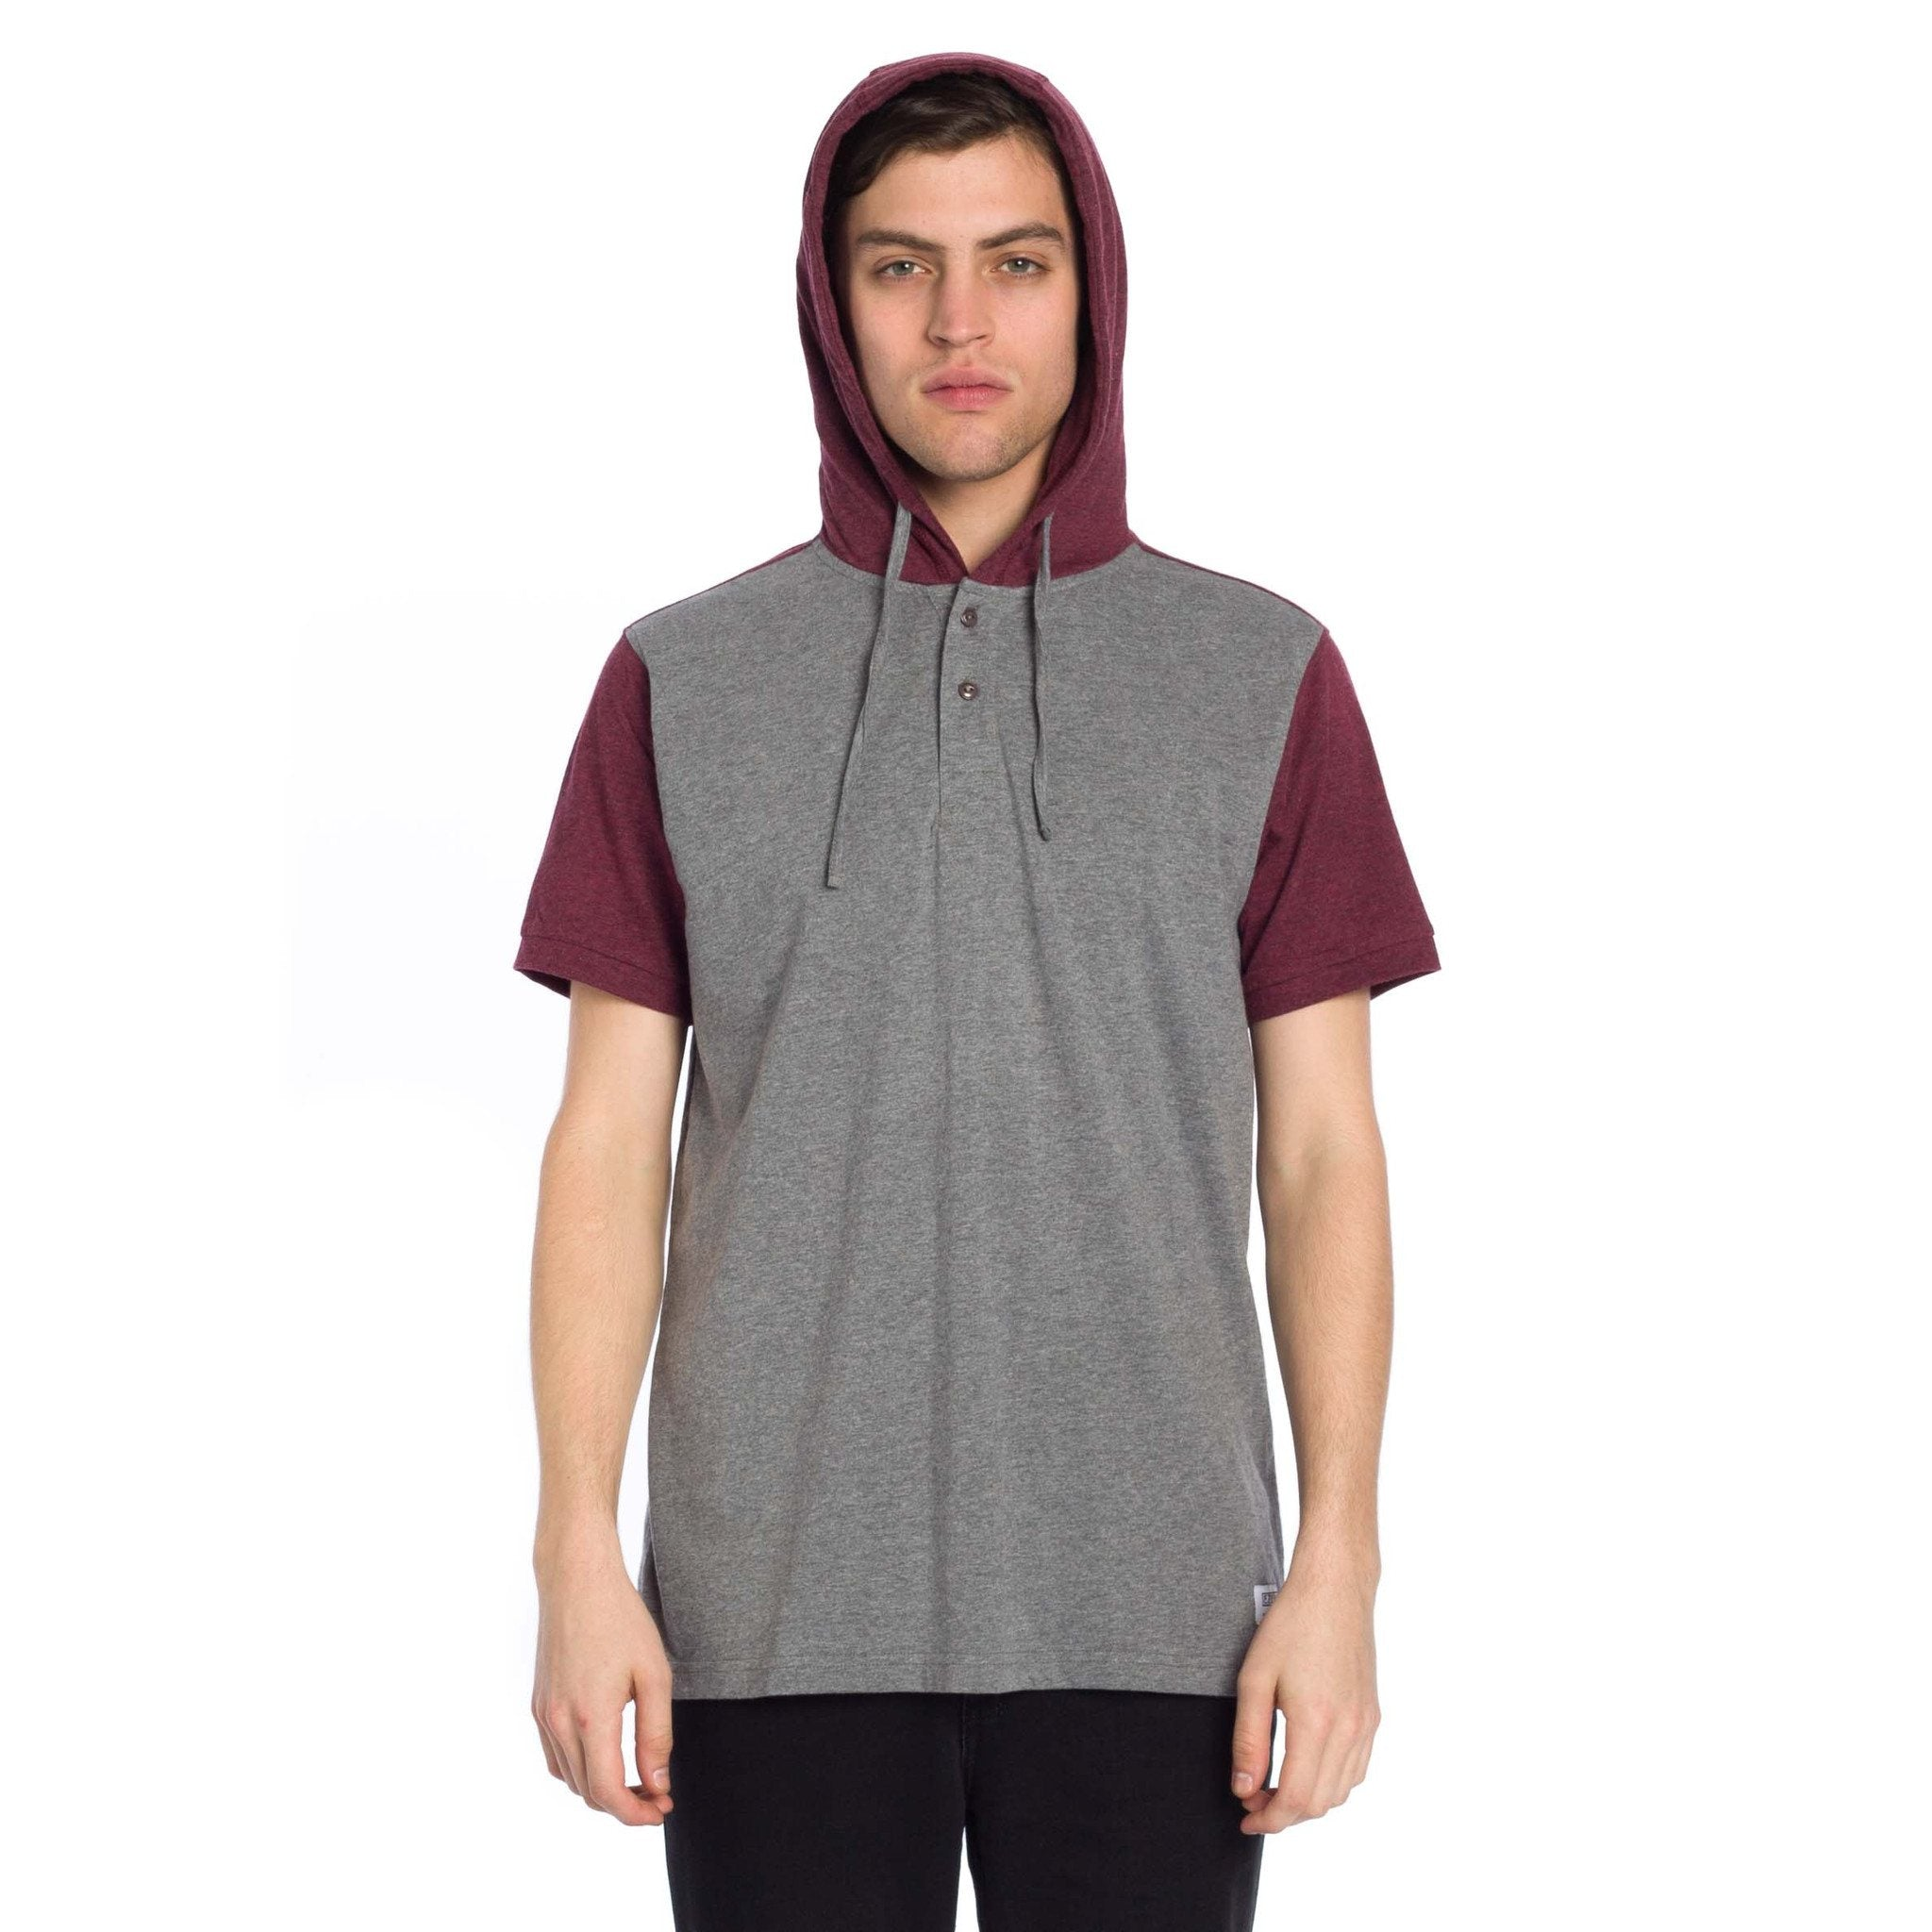 Hyland Hooded Knit - Heather Grey